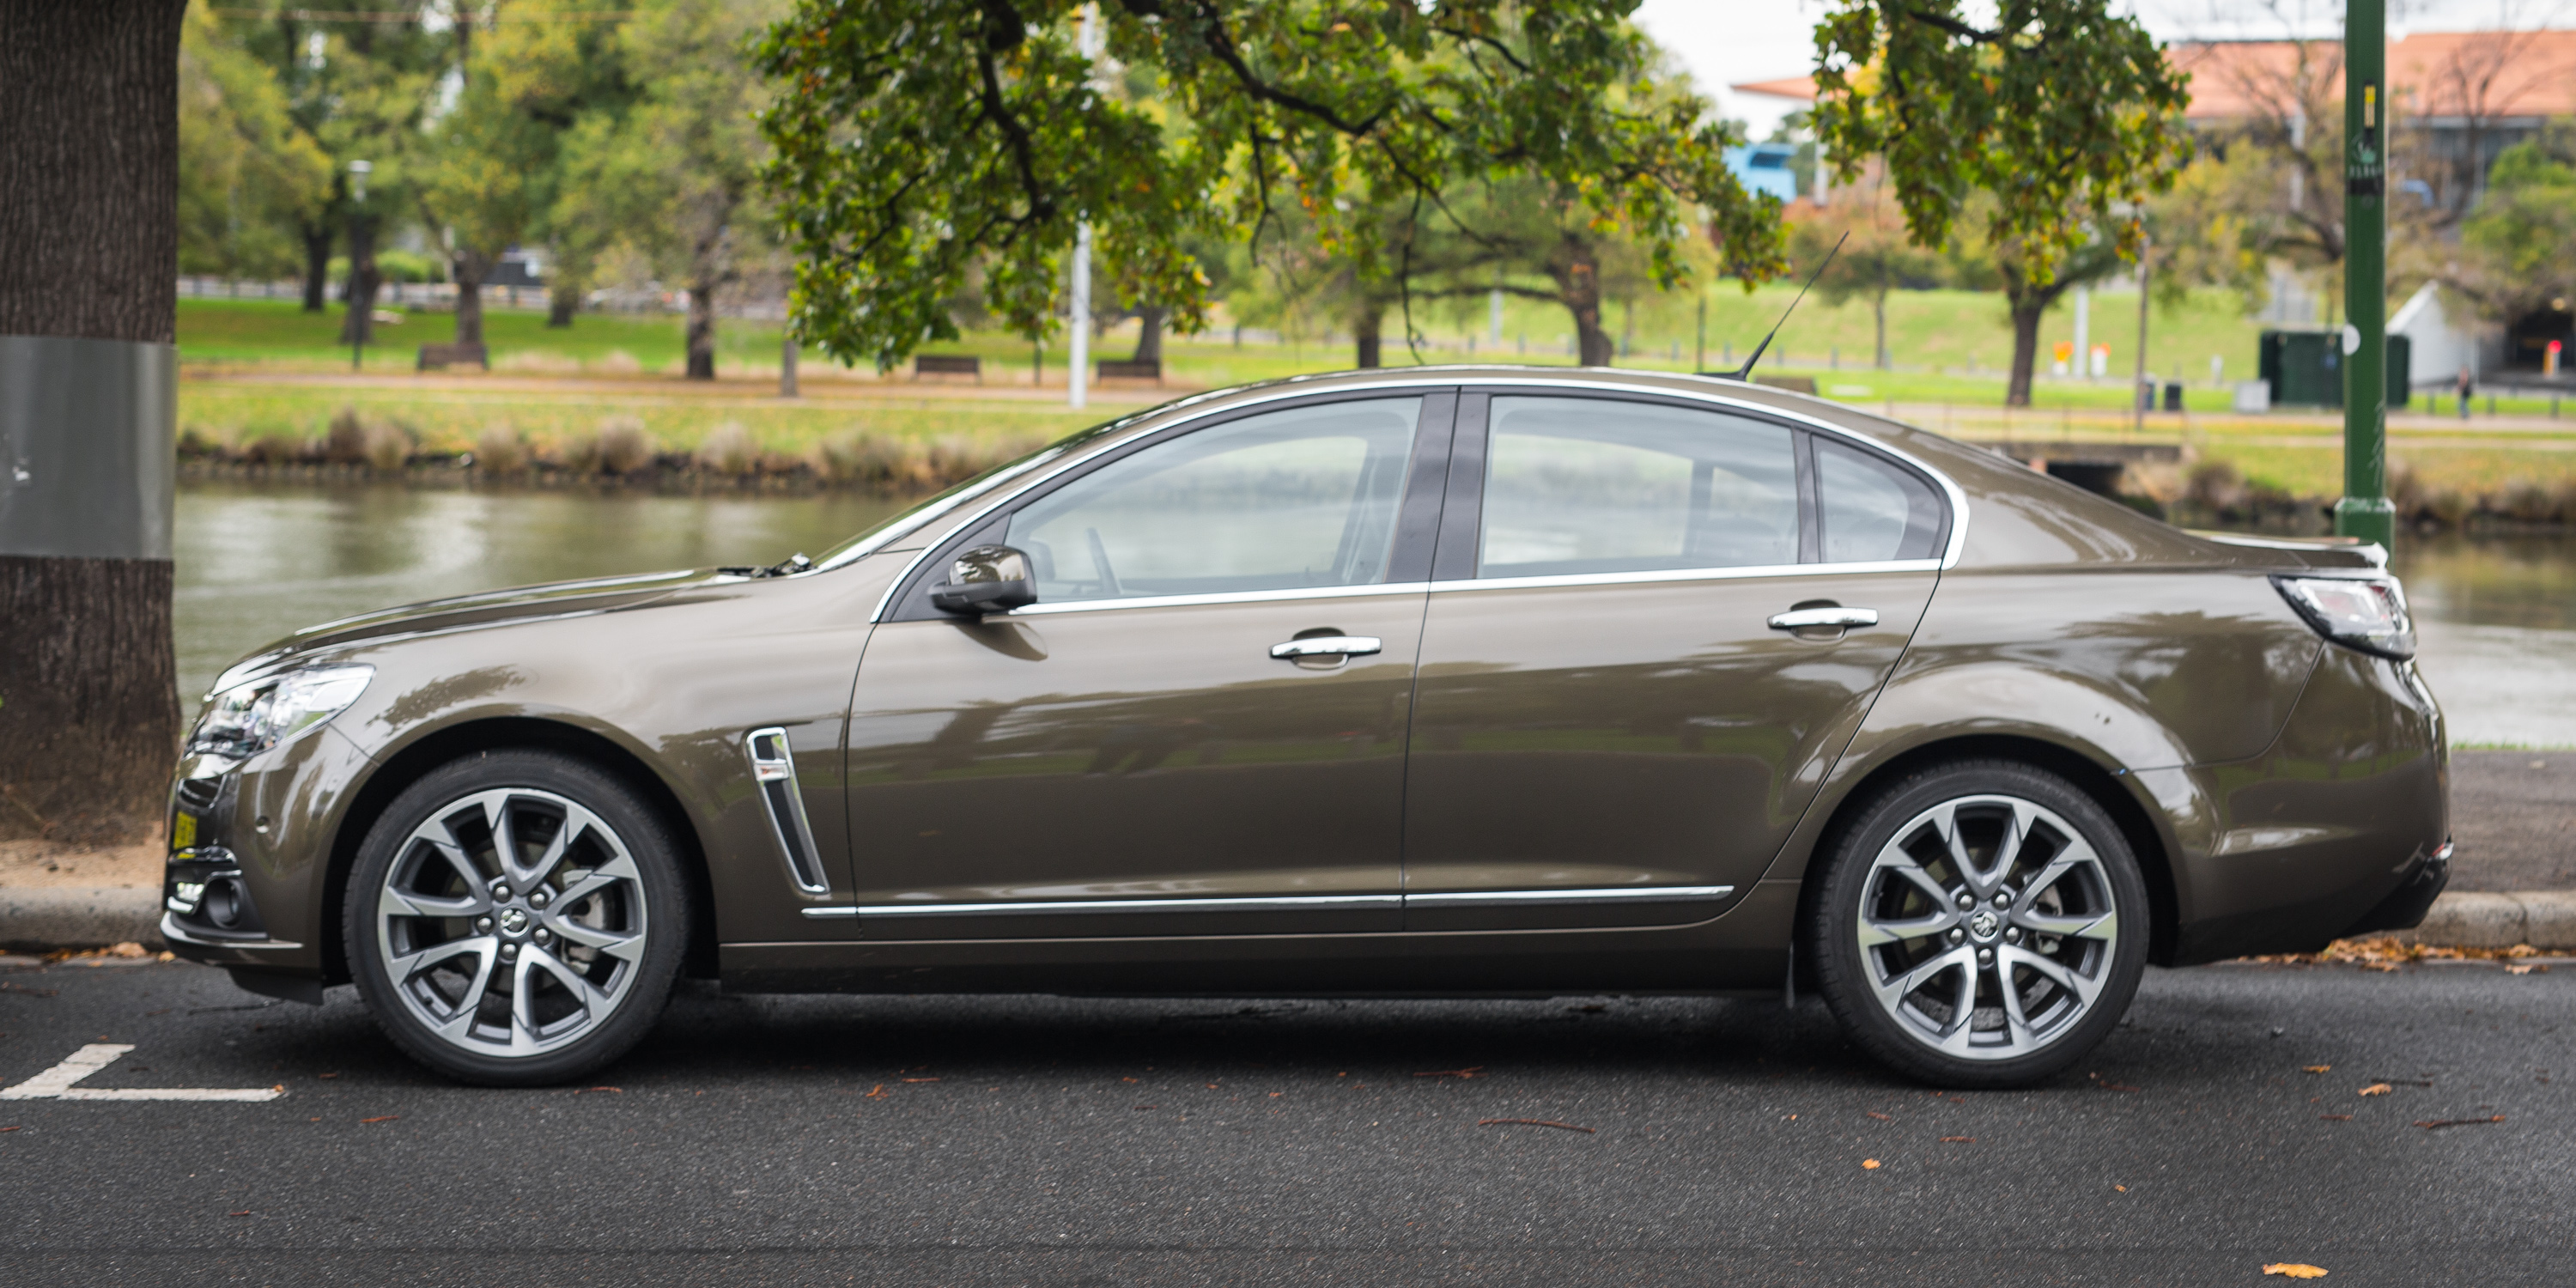 Mitsubishi Eclipse 2016 >> 2016 Holden Calais V Sedan Review - photos | CarAdvice